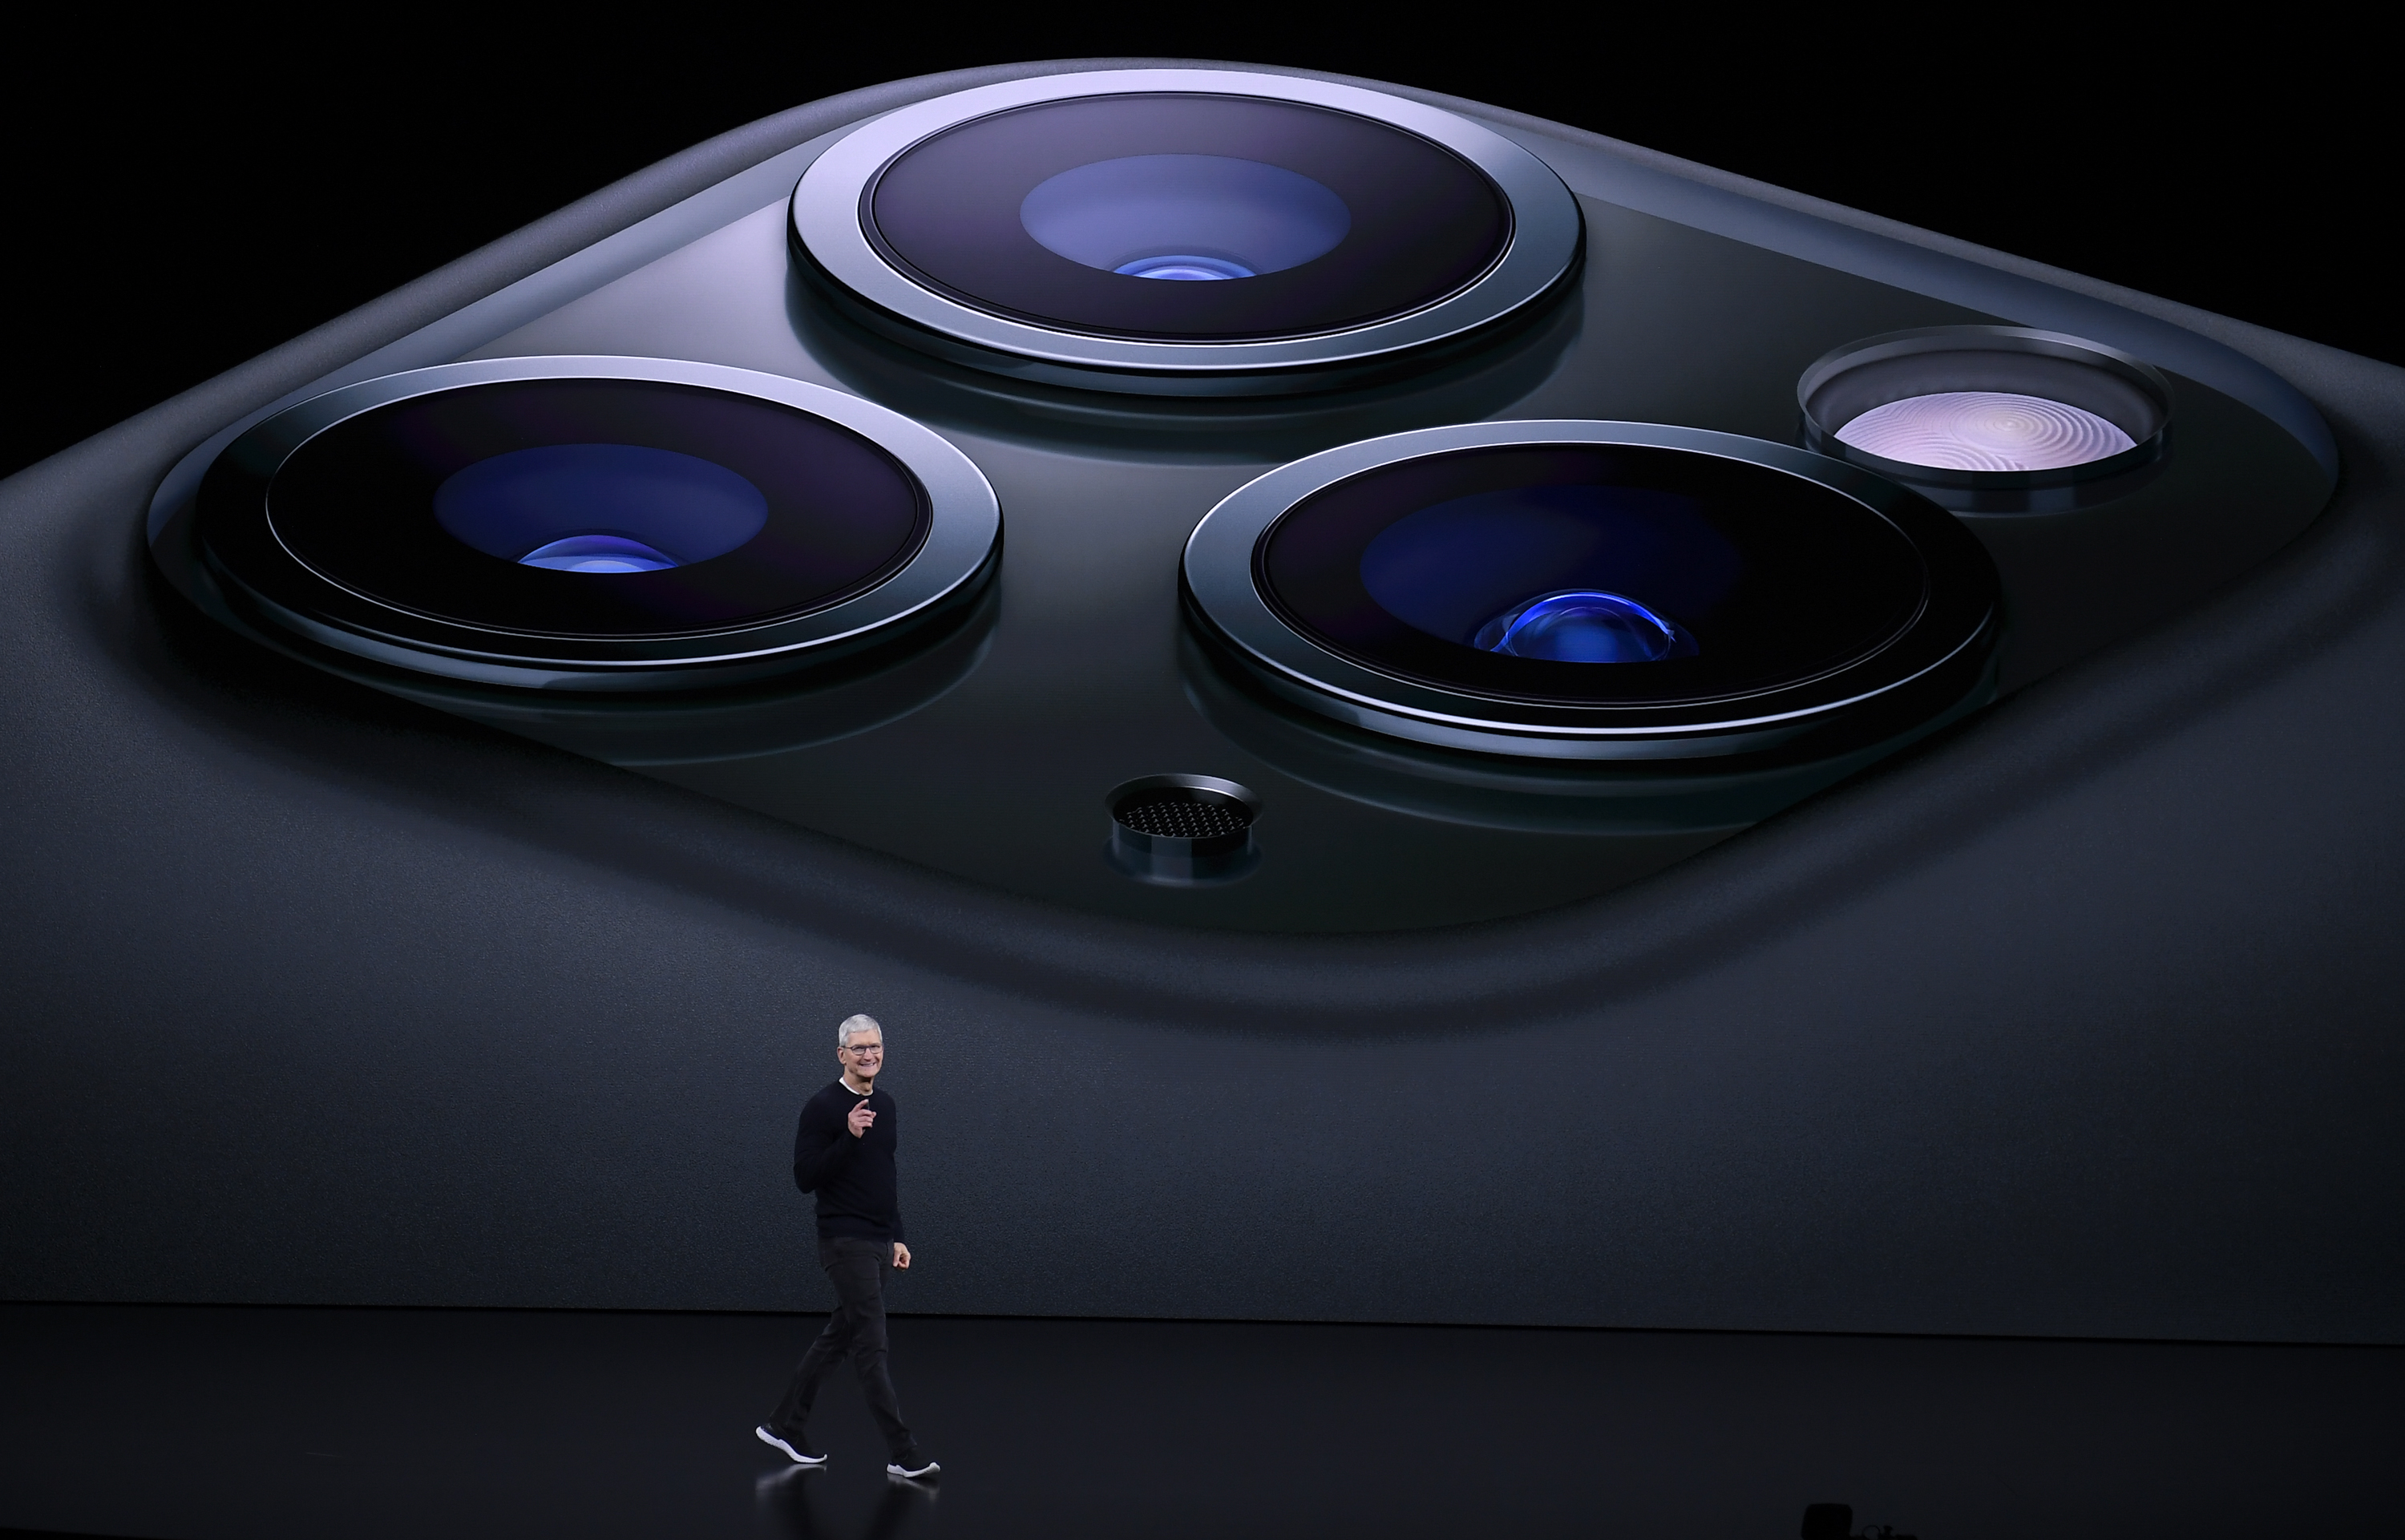 Apple CEO Tim Cook delivers the keynote address during an Apple launch event on September 10, 2019 in Cupertino, California. Apple unveiled several new products including iPhone 11, iPhone 11 Pro, Apple Watch Series 5 and an updated iPad. (Photo by Qi Heng/VCG via Getty Images)